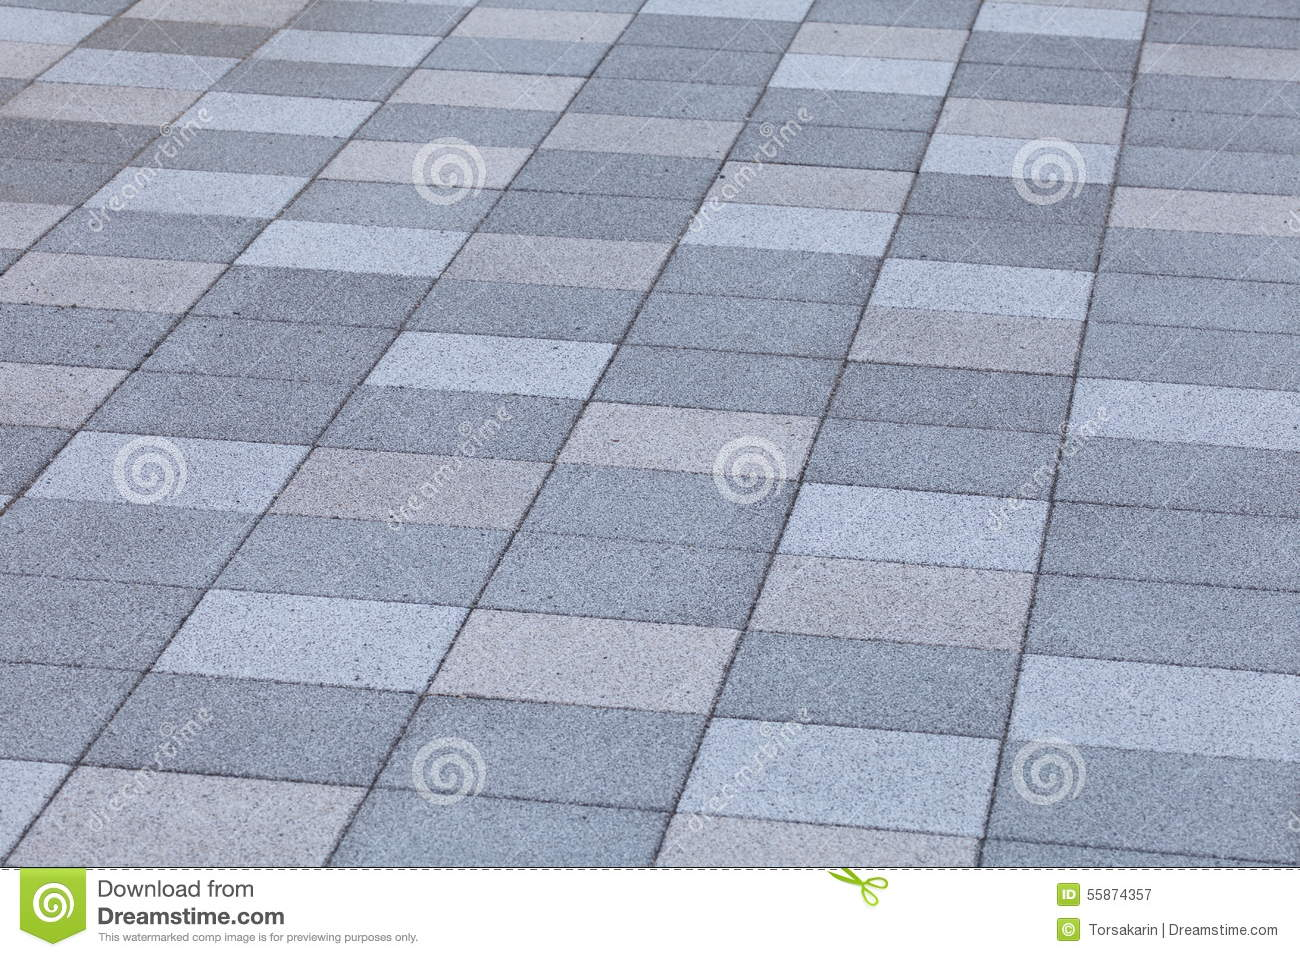 Outdoor concrete block floor stock illustration image for Concrete block floor